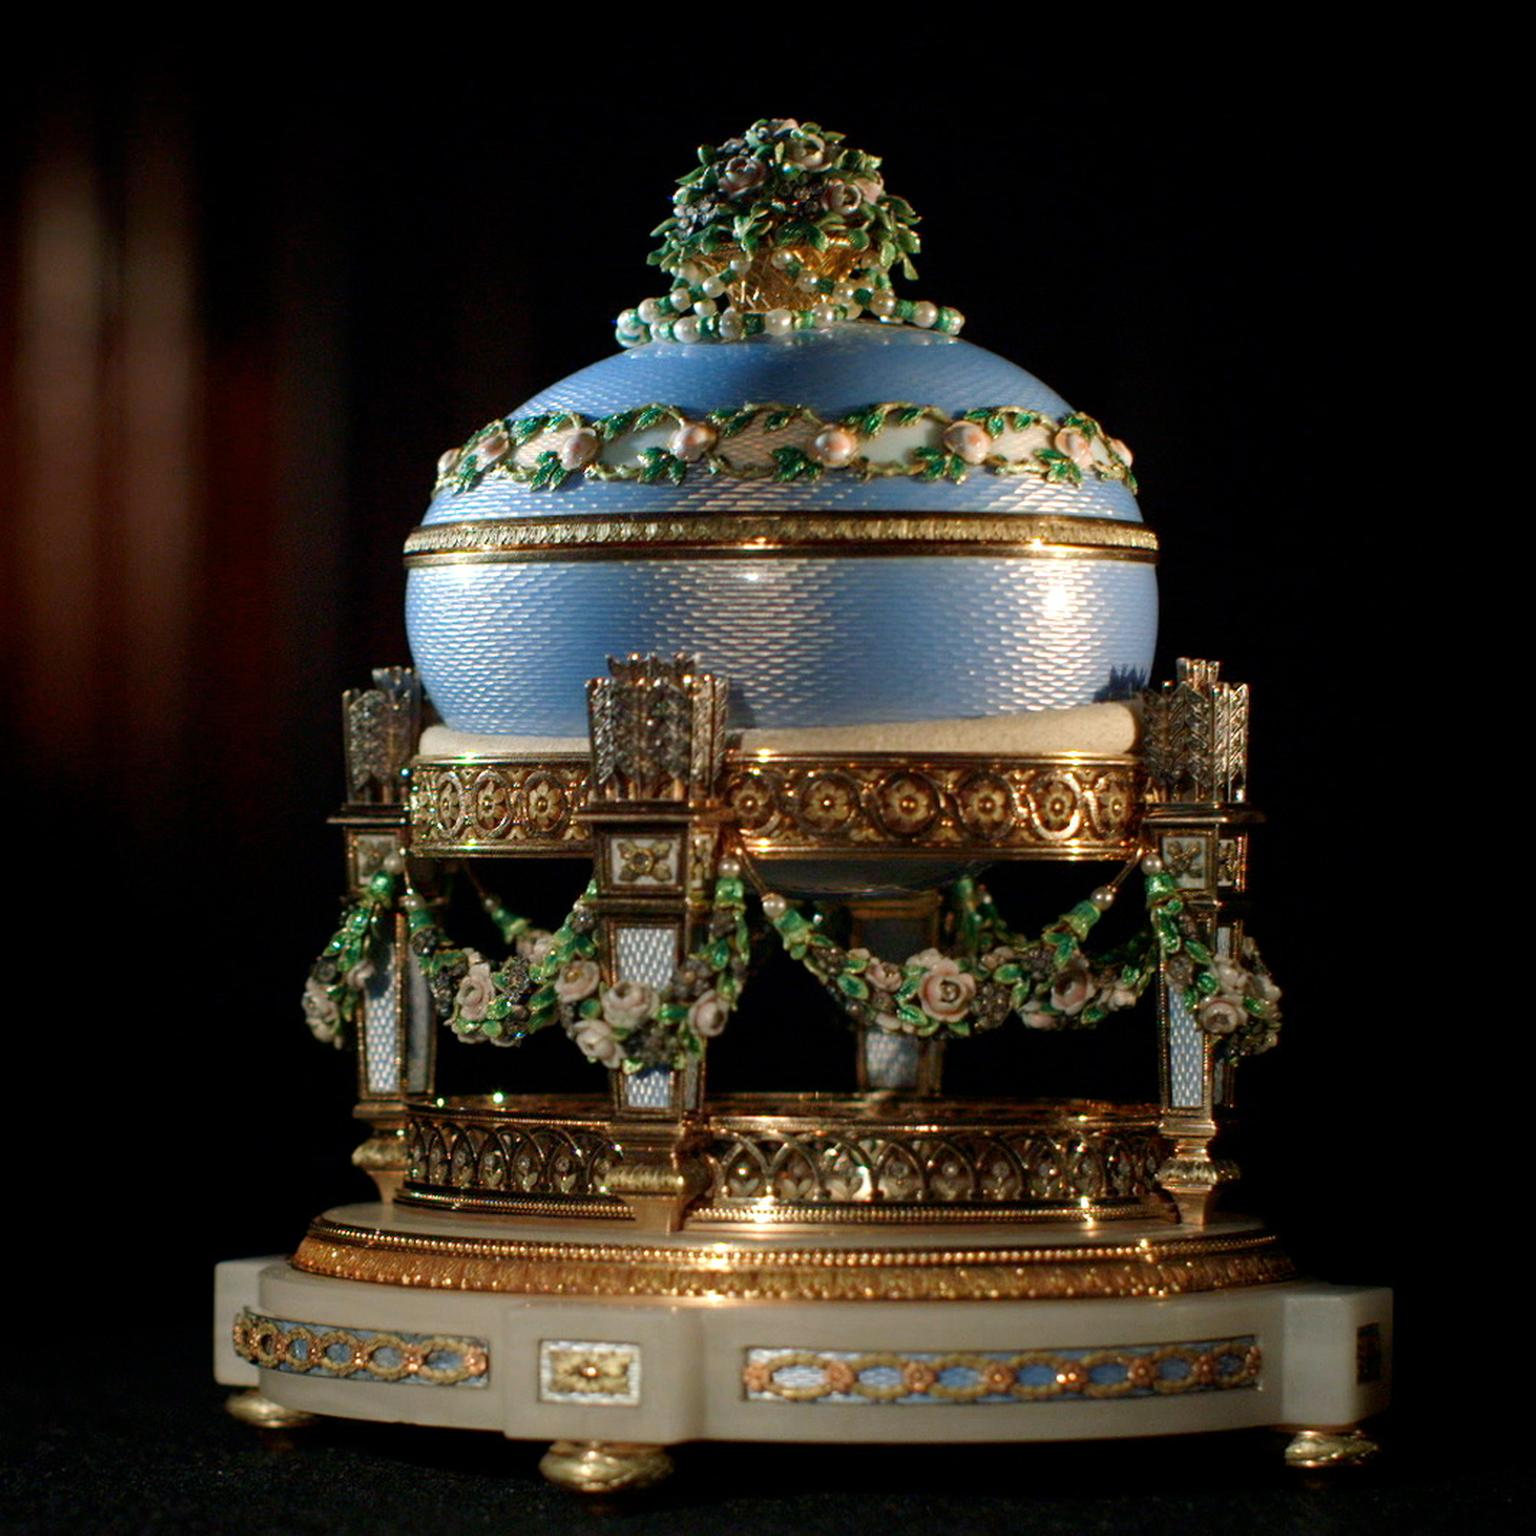 The Faberge Love Trophy egg